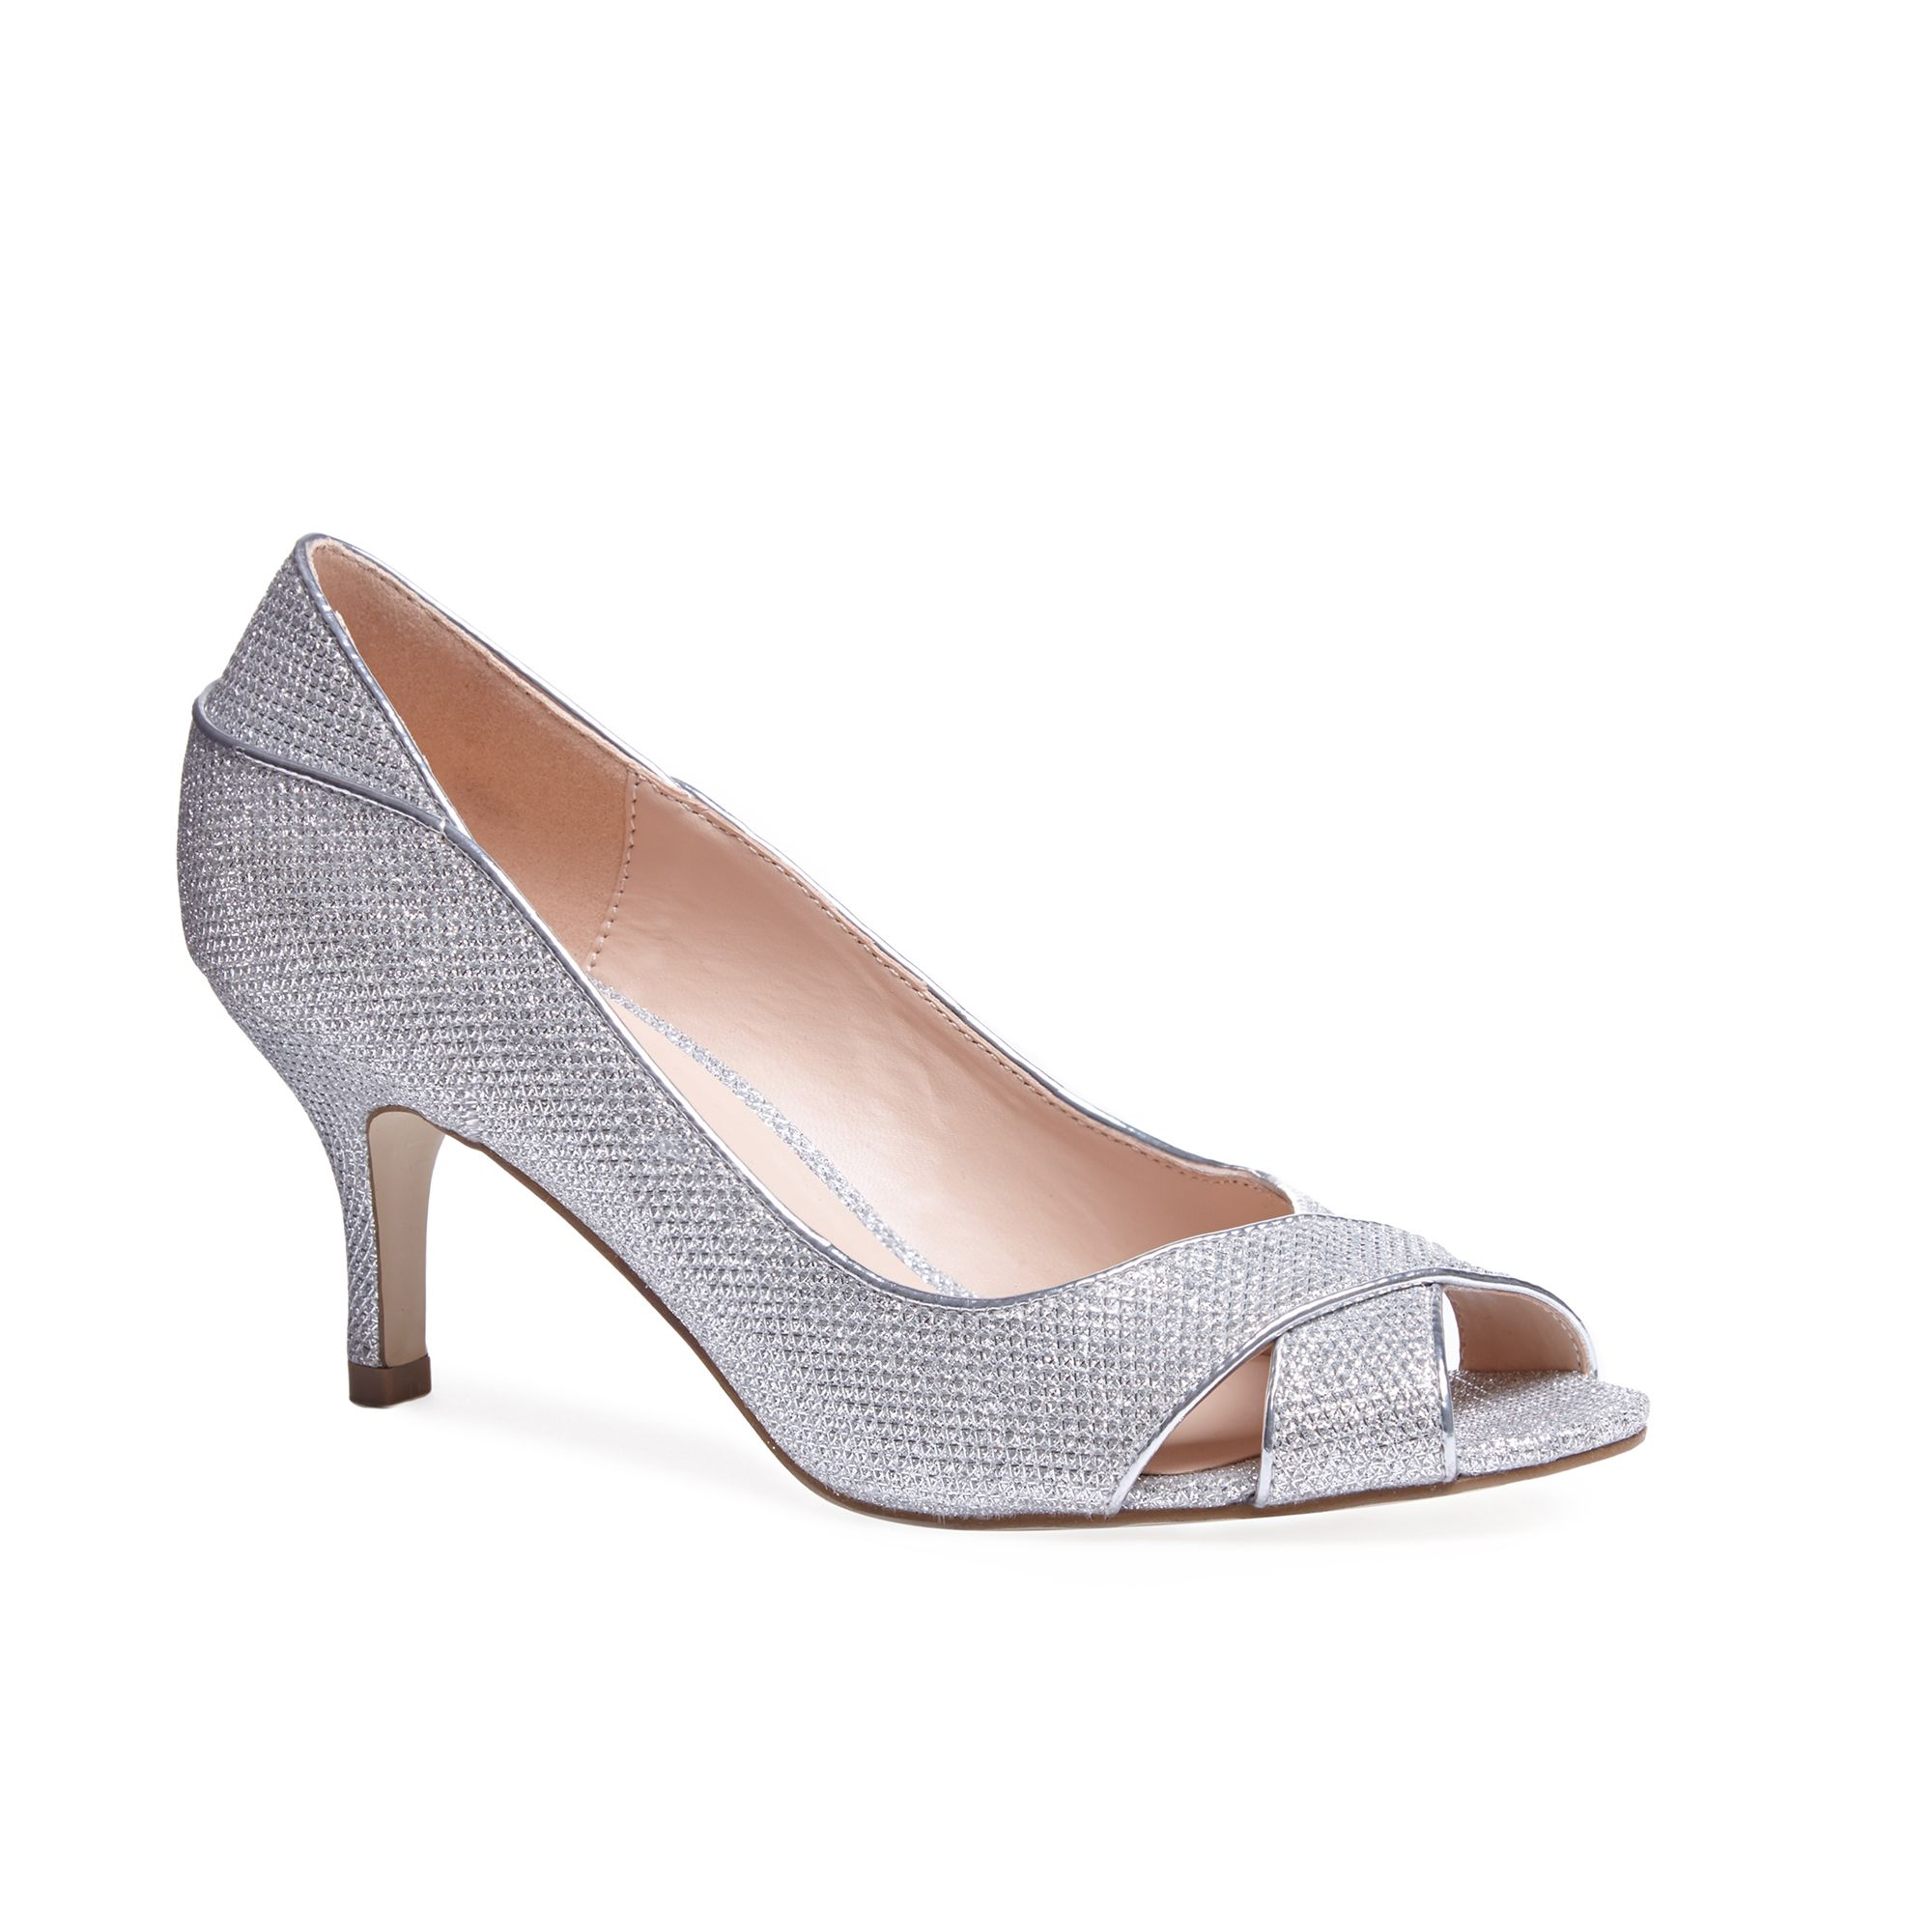 Paradox London Pink Paradox London Pink Adele glitter peep toe court shoes, Silver